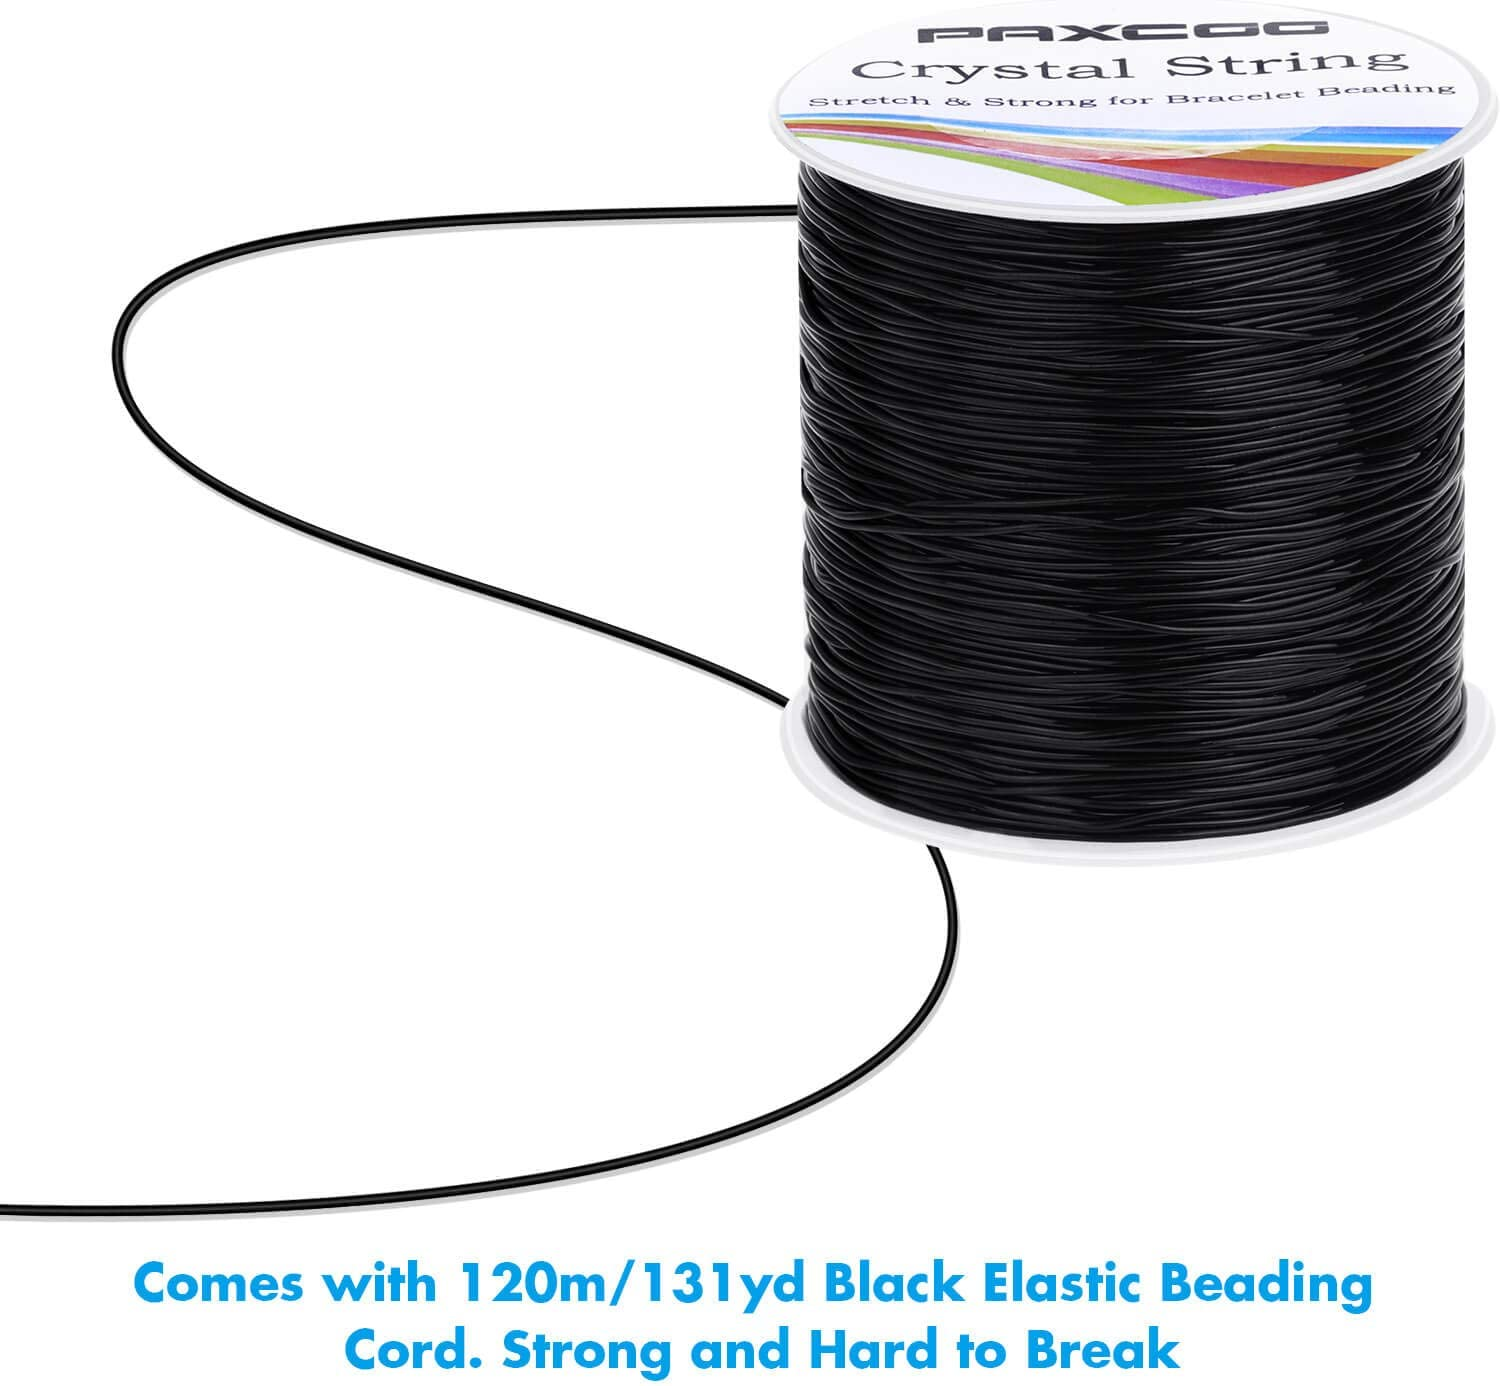 0.8mm Black Elastic String Bracelet Cord Jewelry Bead Thread for Bracelets Necklaces Paxcoo Stretchy String for Bracelets Beading and Jewelry Making